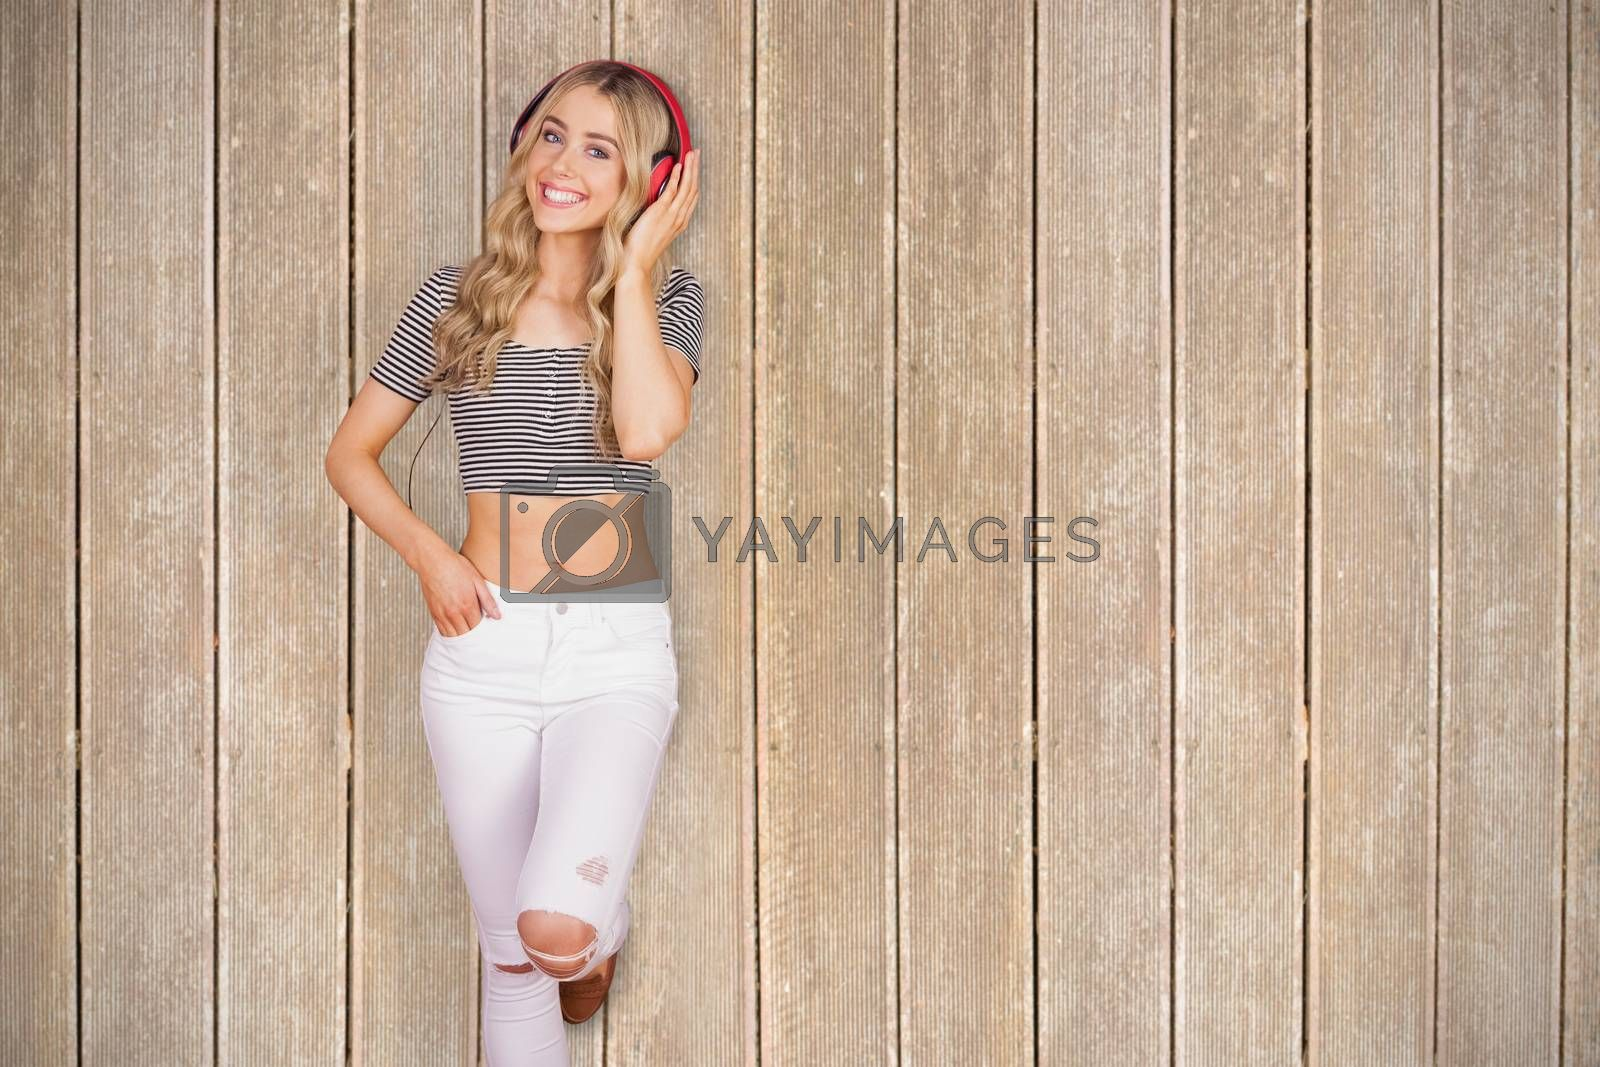 Portrait of a pretty young woman with headphones  against wooden planks